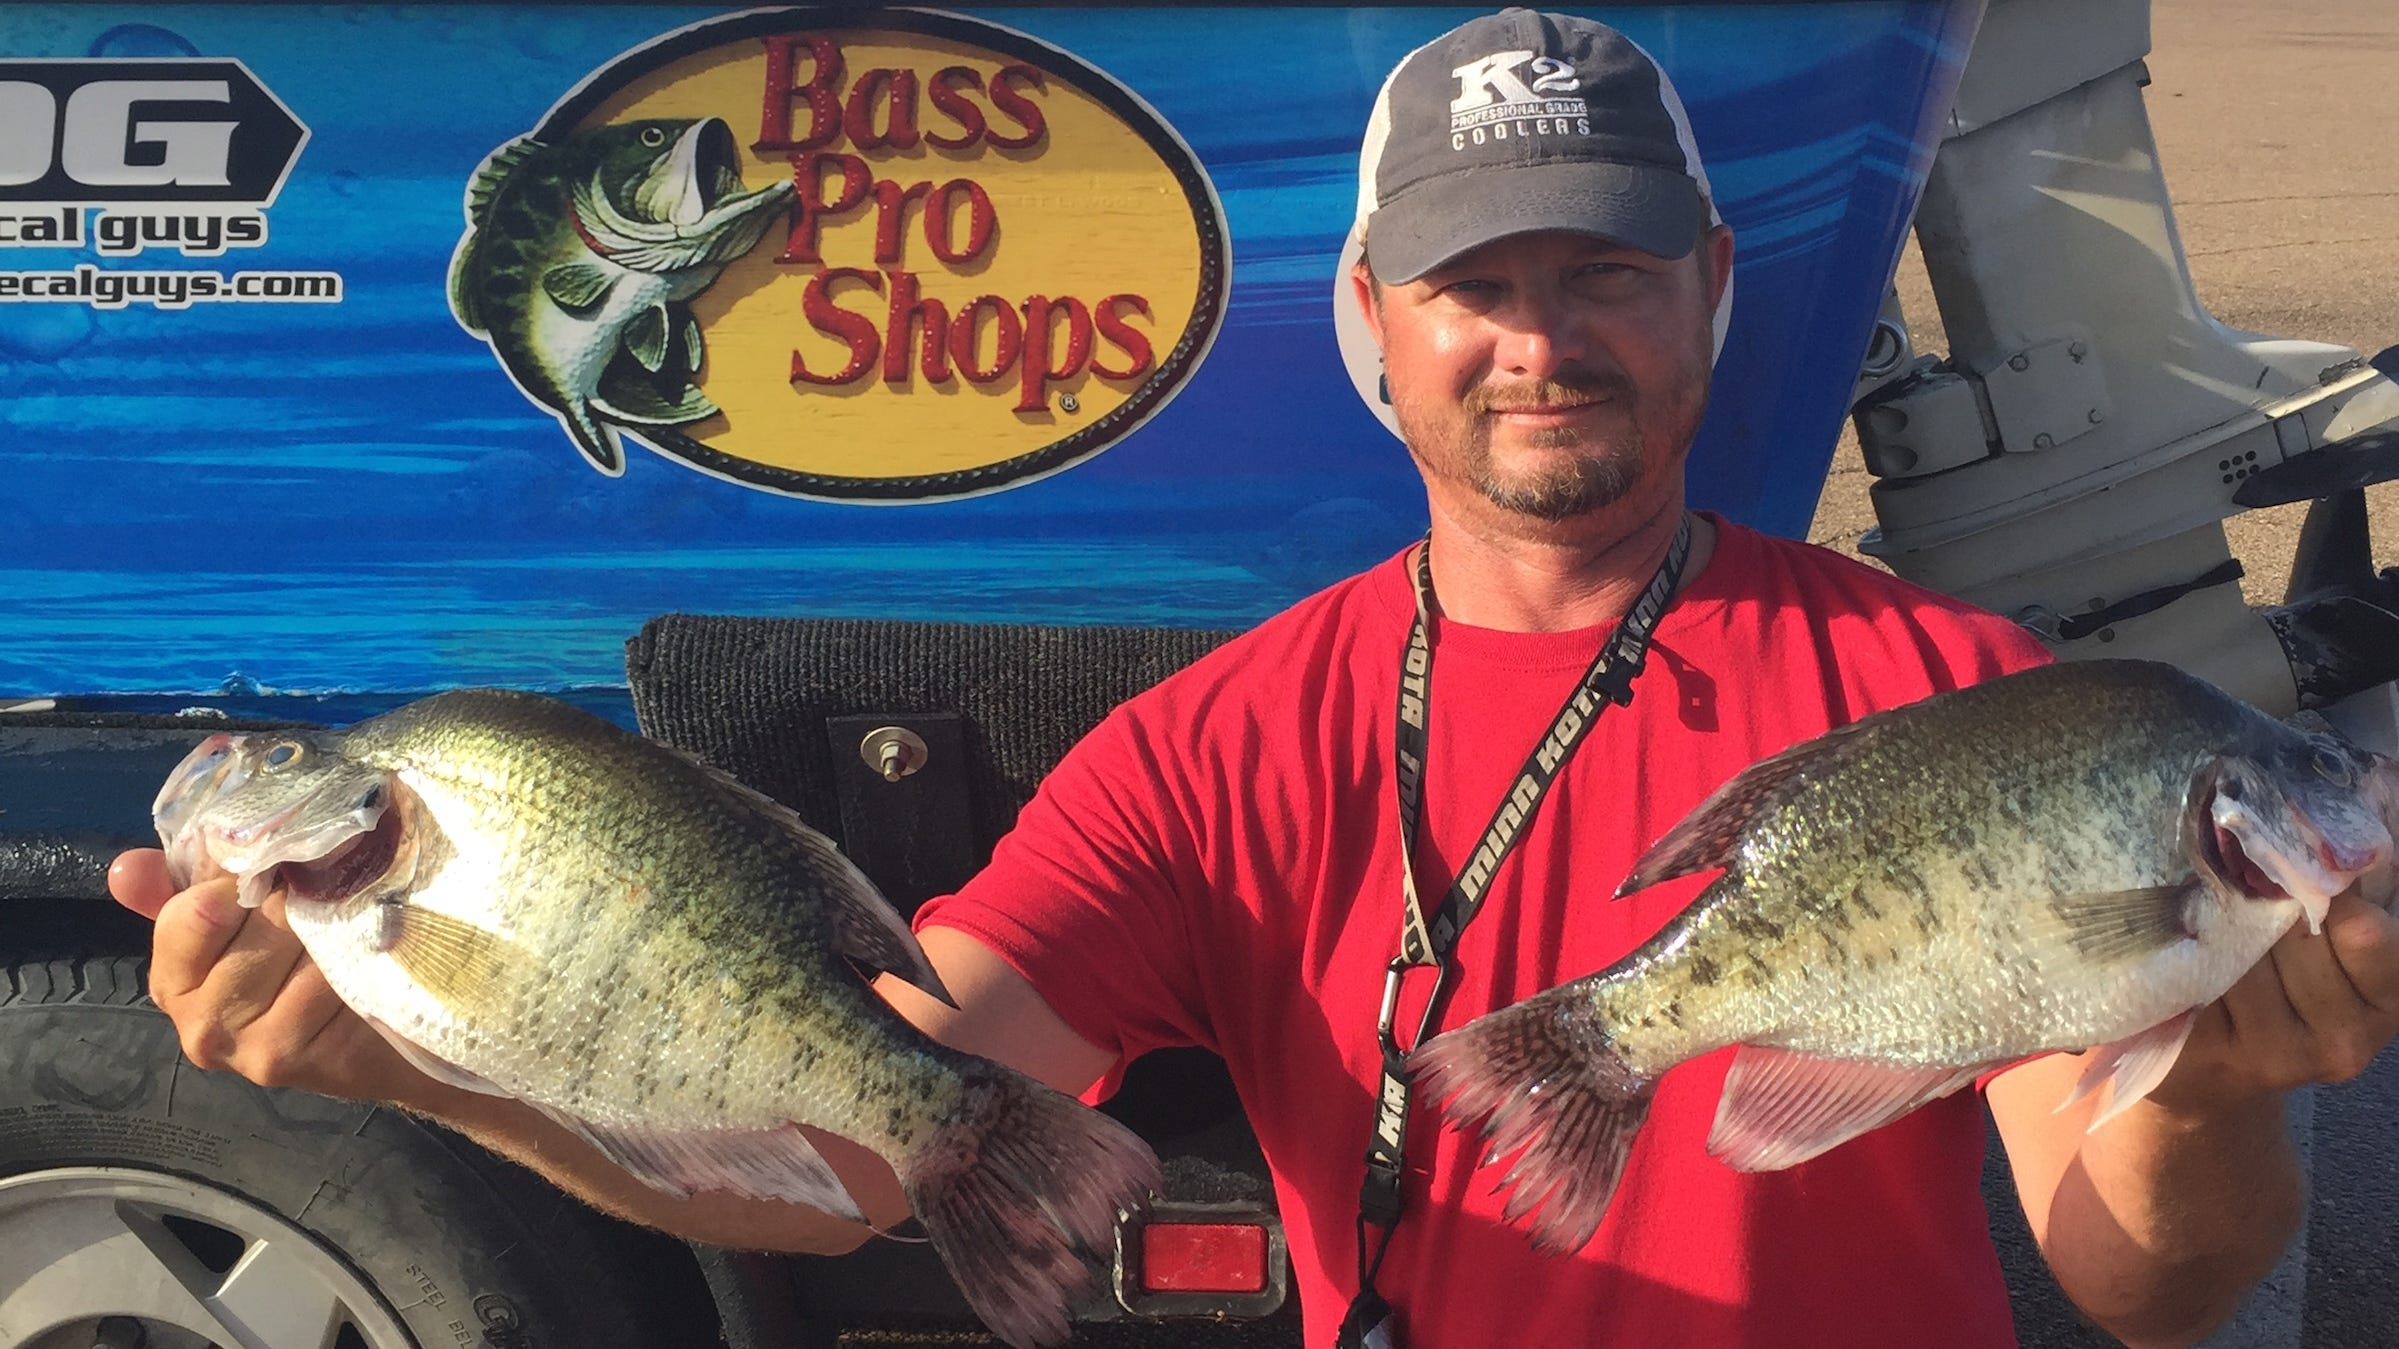 August: High temperatures and hot crappie action